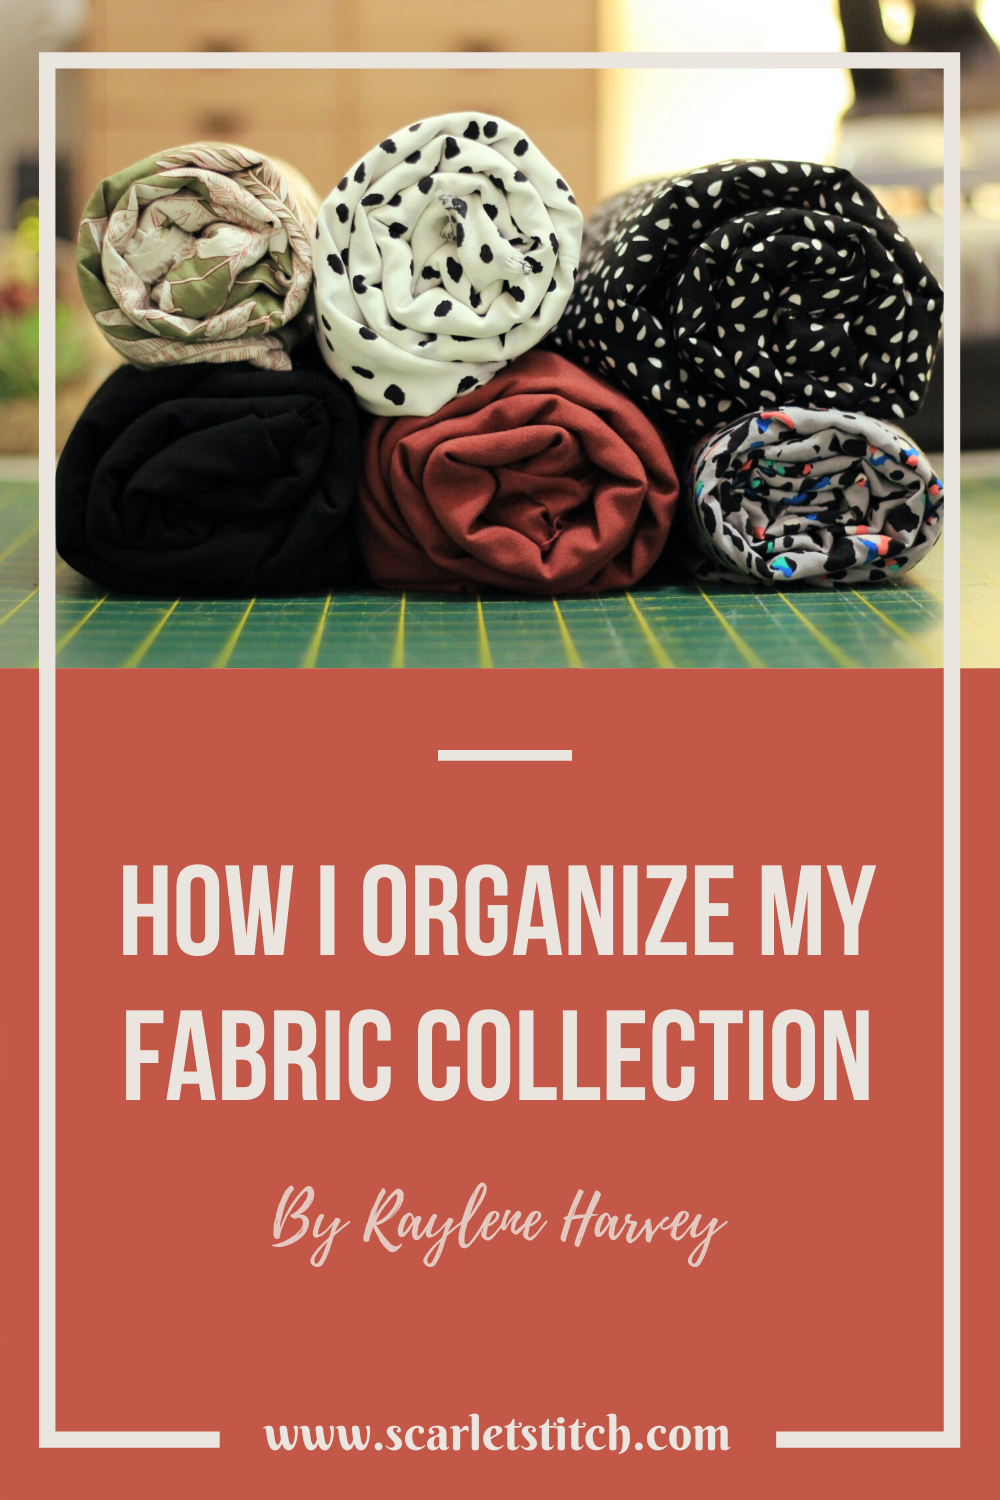 How I organize my fabric collection | Scarlet Stitch